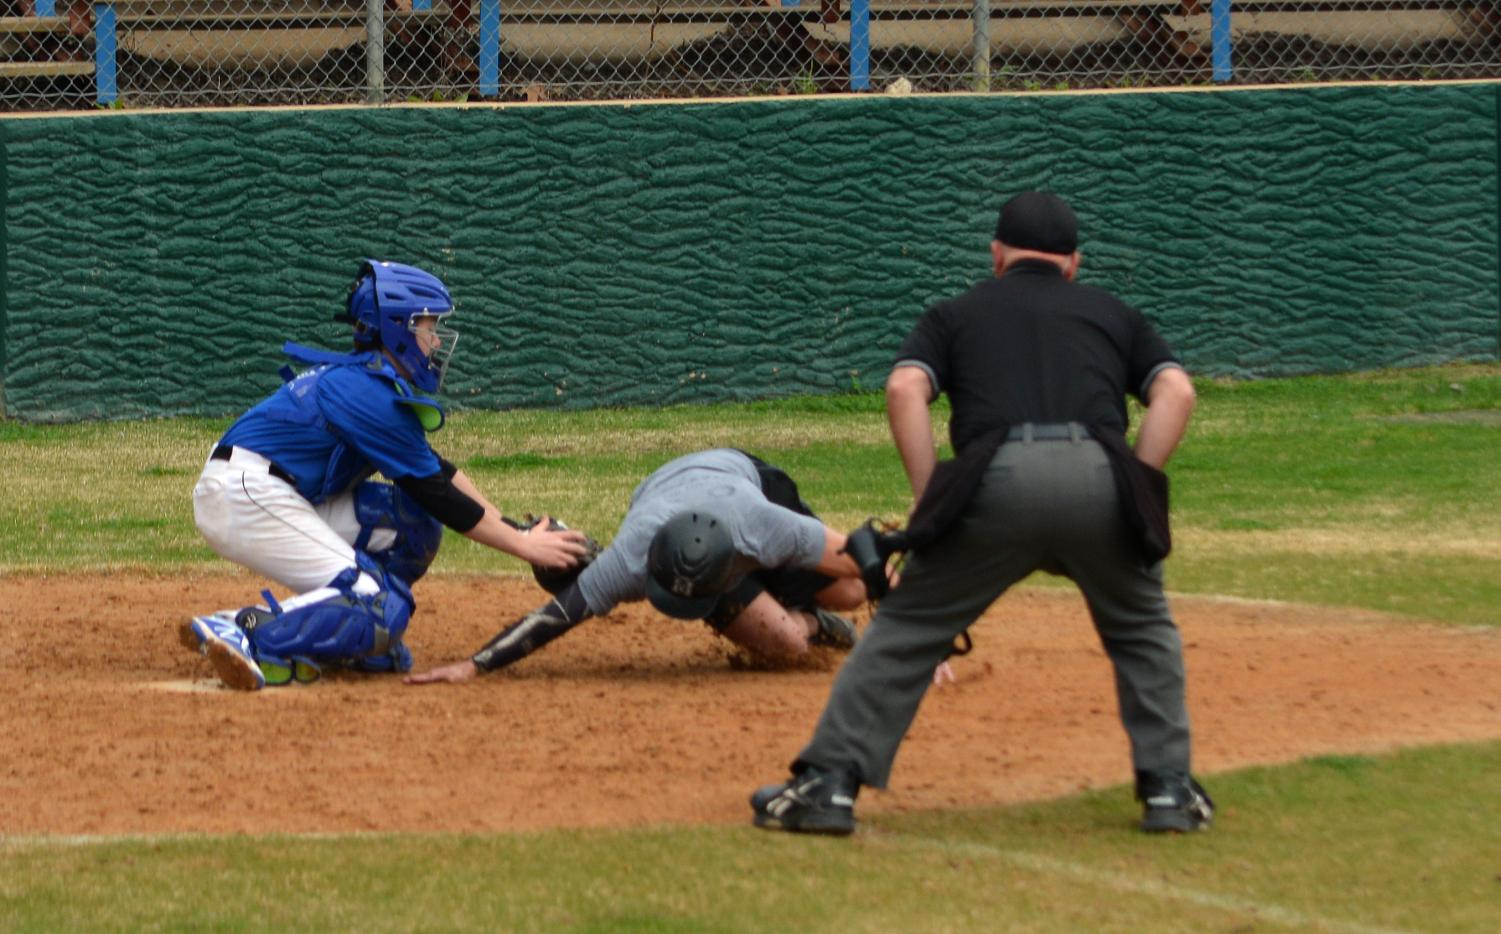 In his first MAC Alumni Game, freshman catcher made a big impact, applying this tag to thwart a double steal and then stroking a two-out RBI single to tie the score at 4. Photo by Dave Winter.